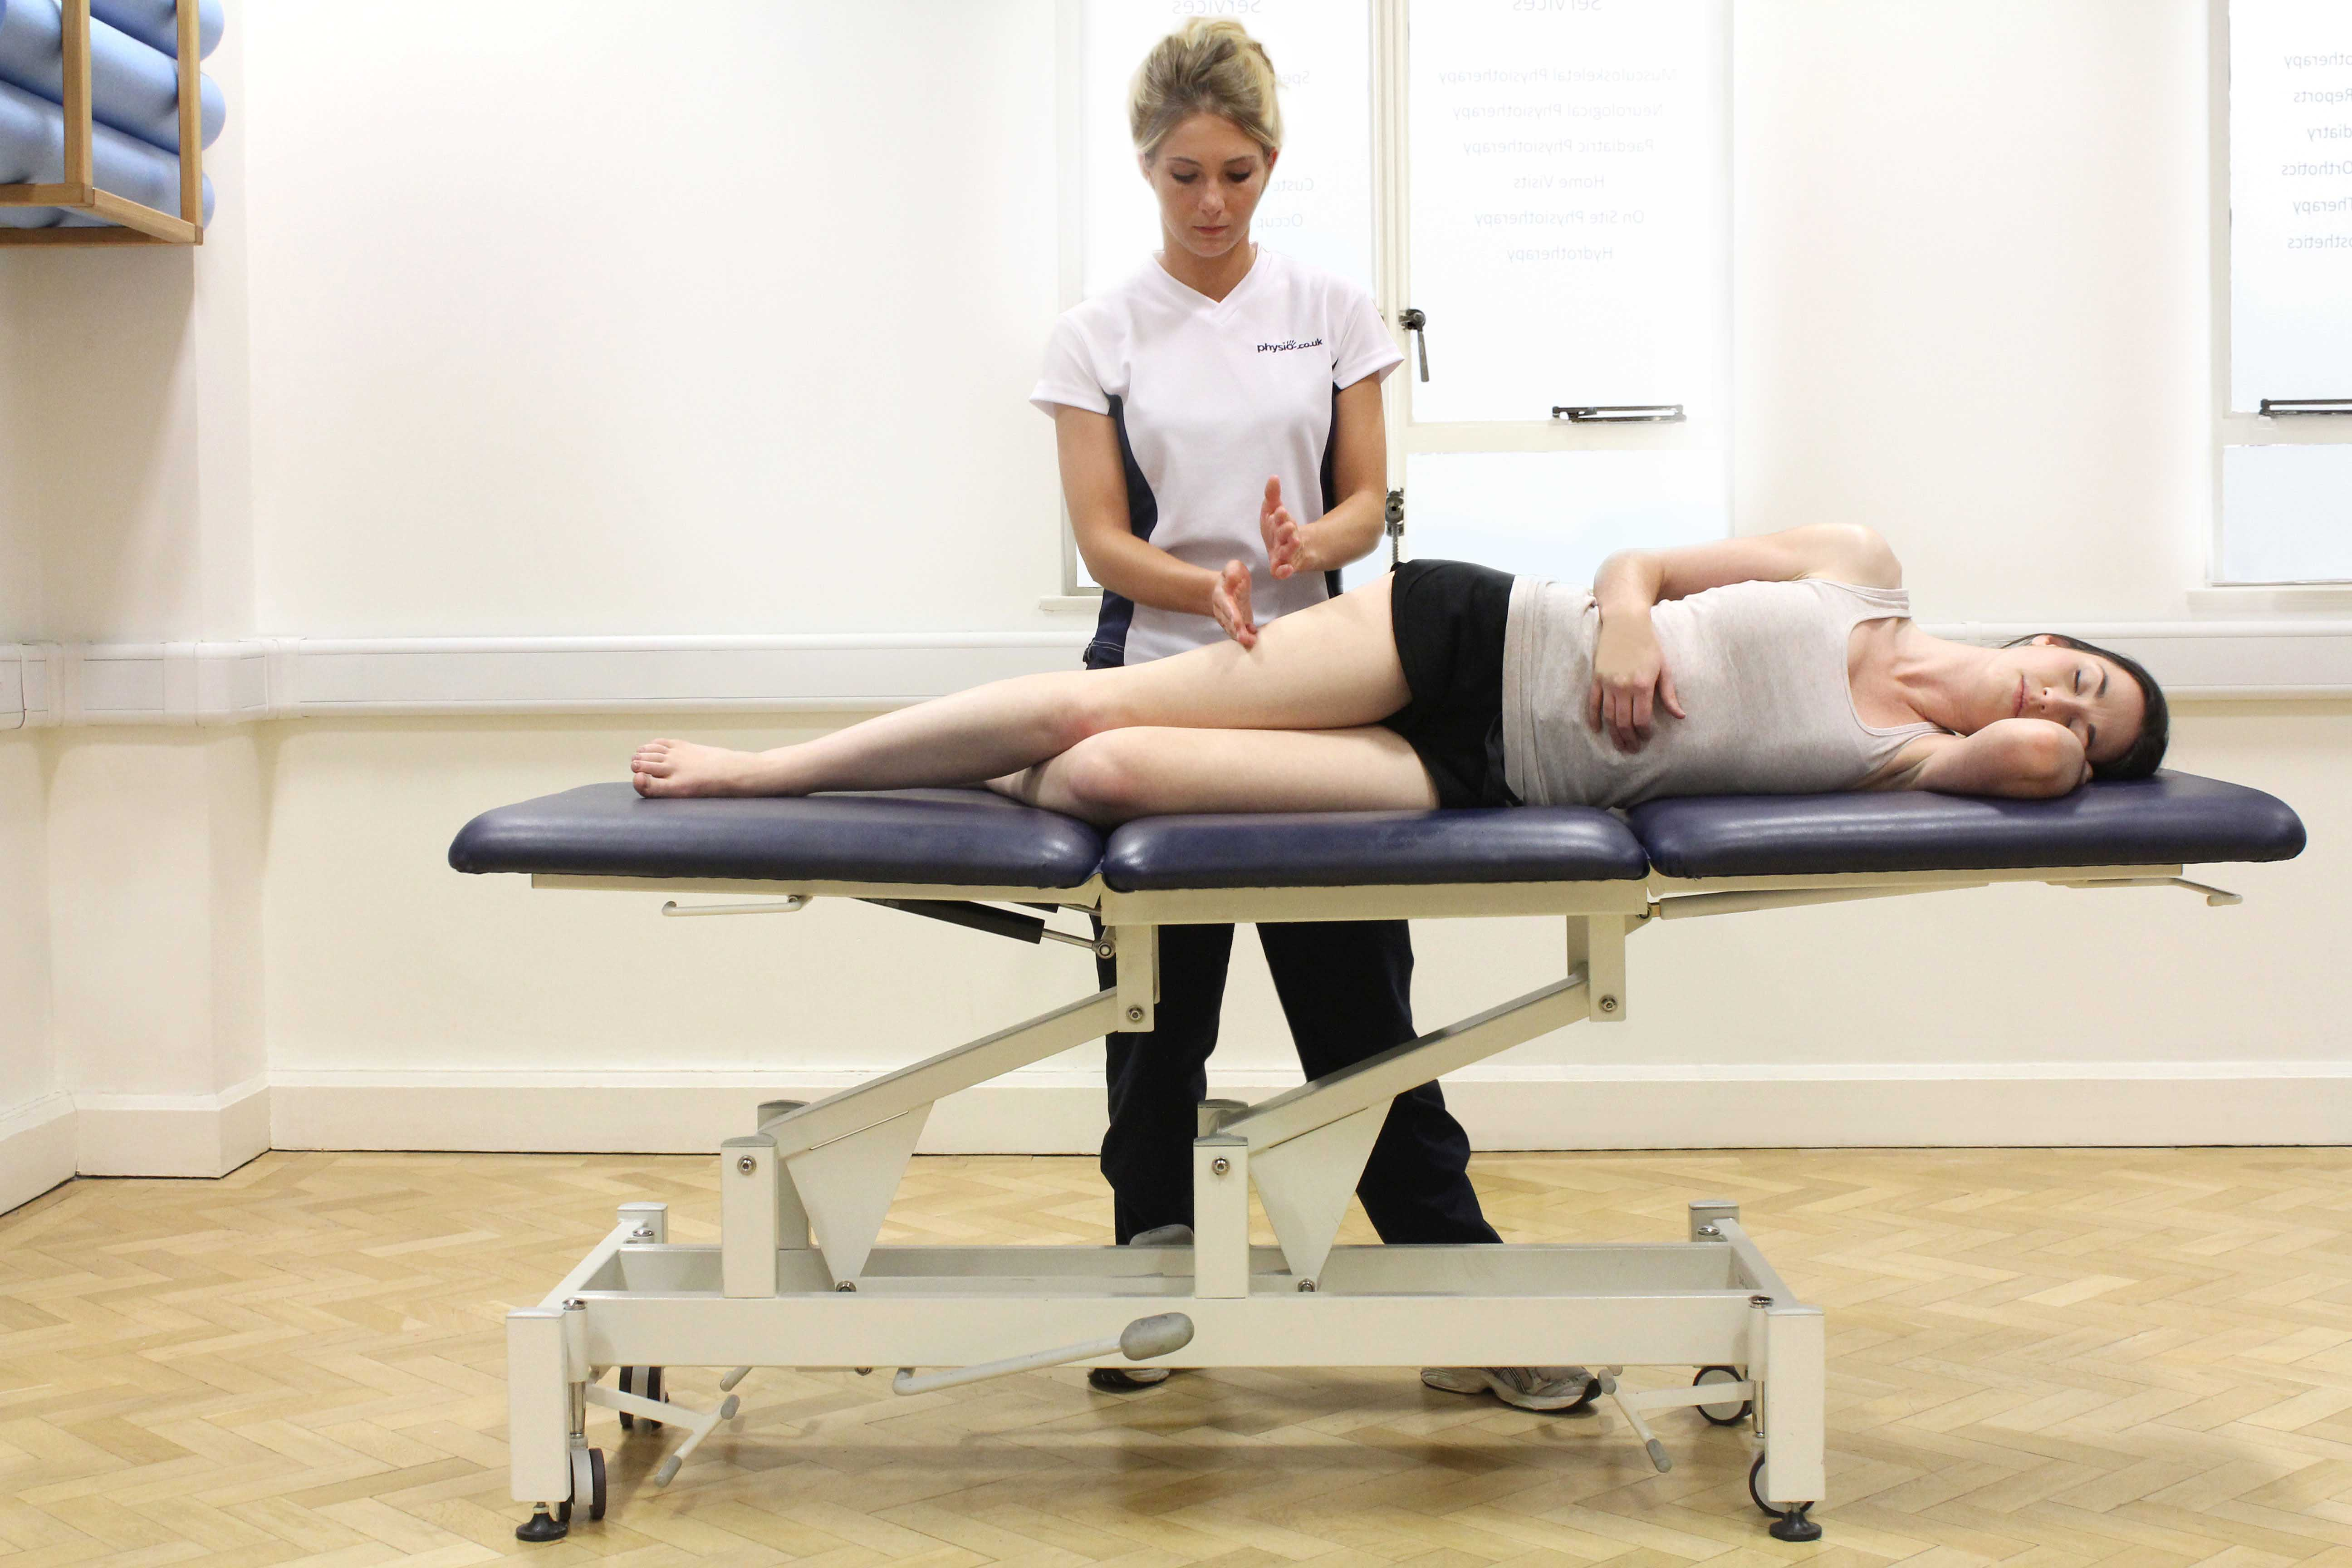 Hacking percussion massage of the vastus lateralis muscle by a specilaist massage therapist